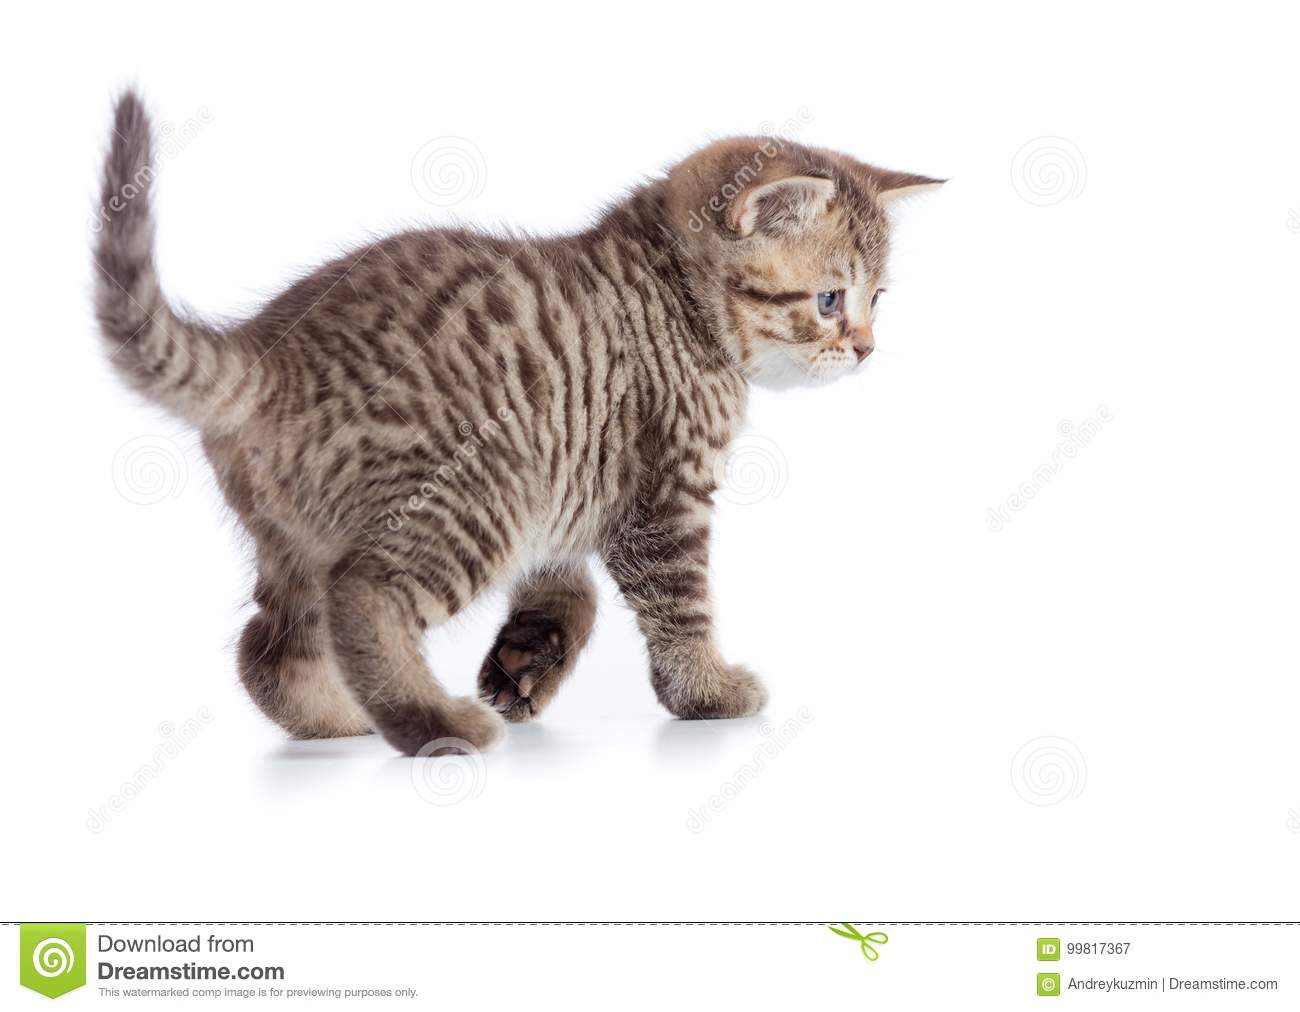 Young tabby cat side view. Walking kitten isolated on white.